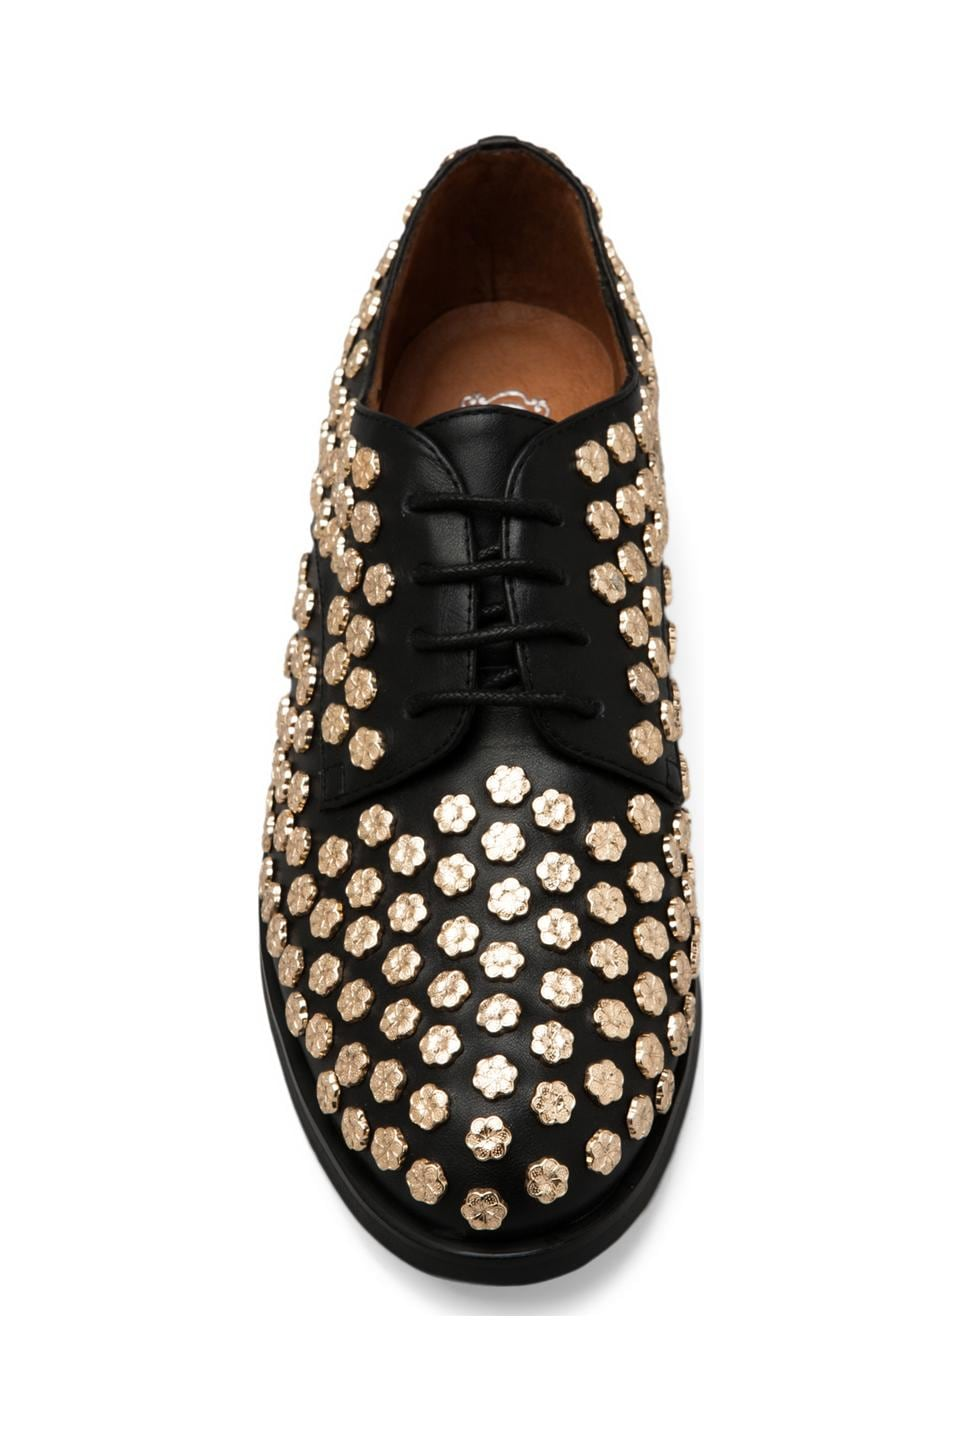 Jeffrey Campbell Daltrey-Flr in Black Gold